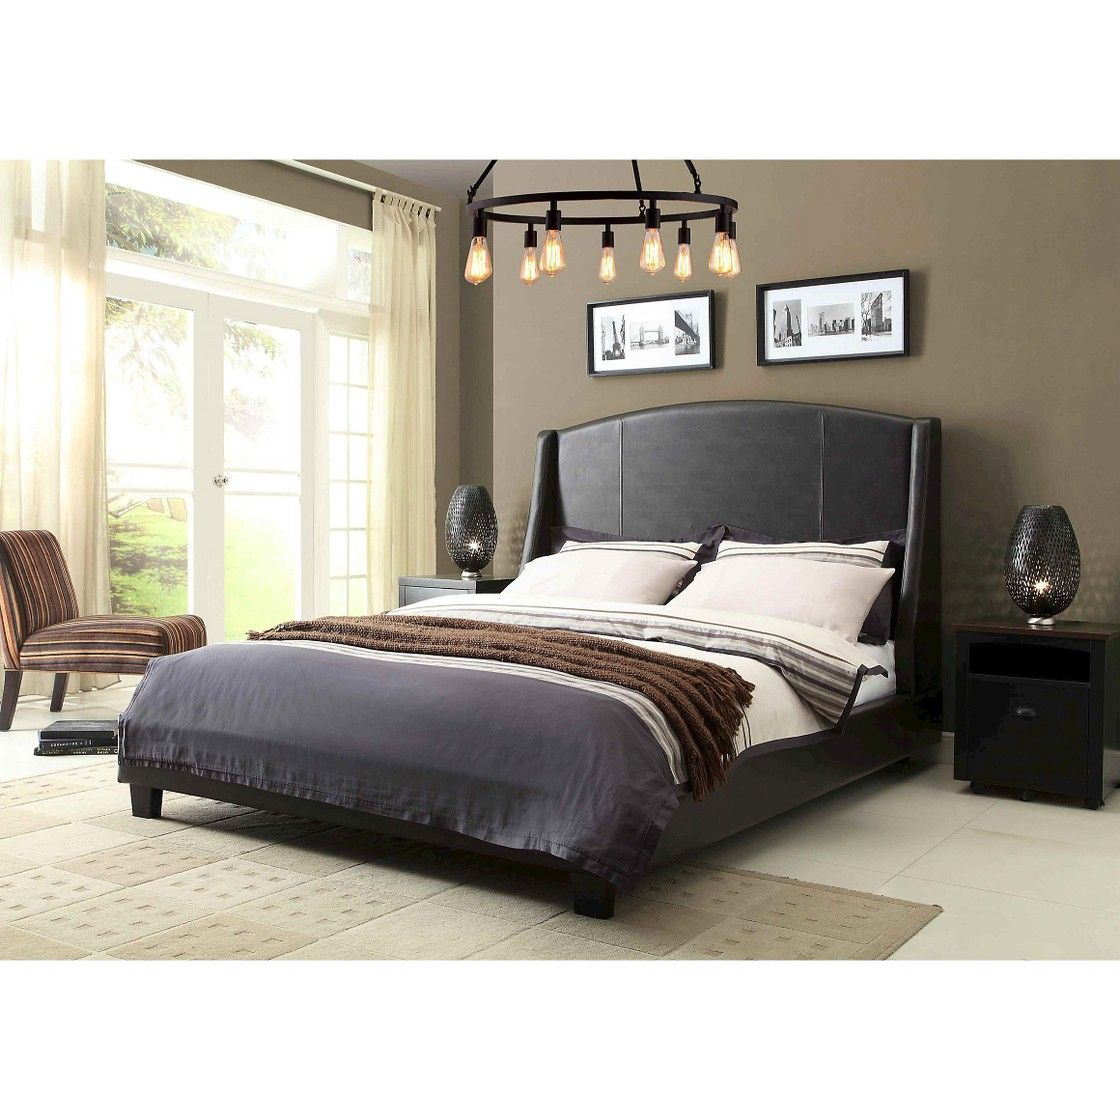 Fashion Bed Group Beverly Bed - Sable (King)